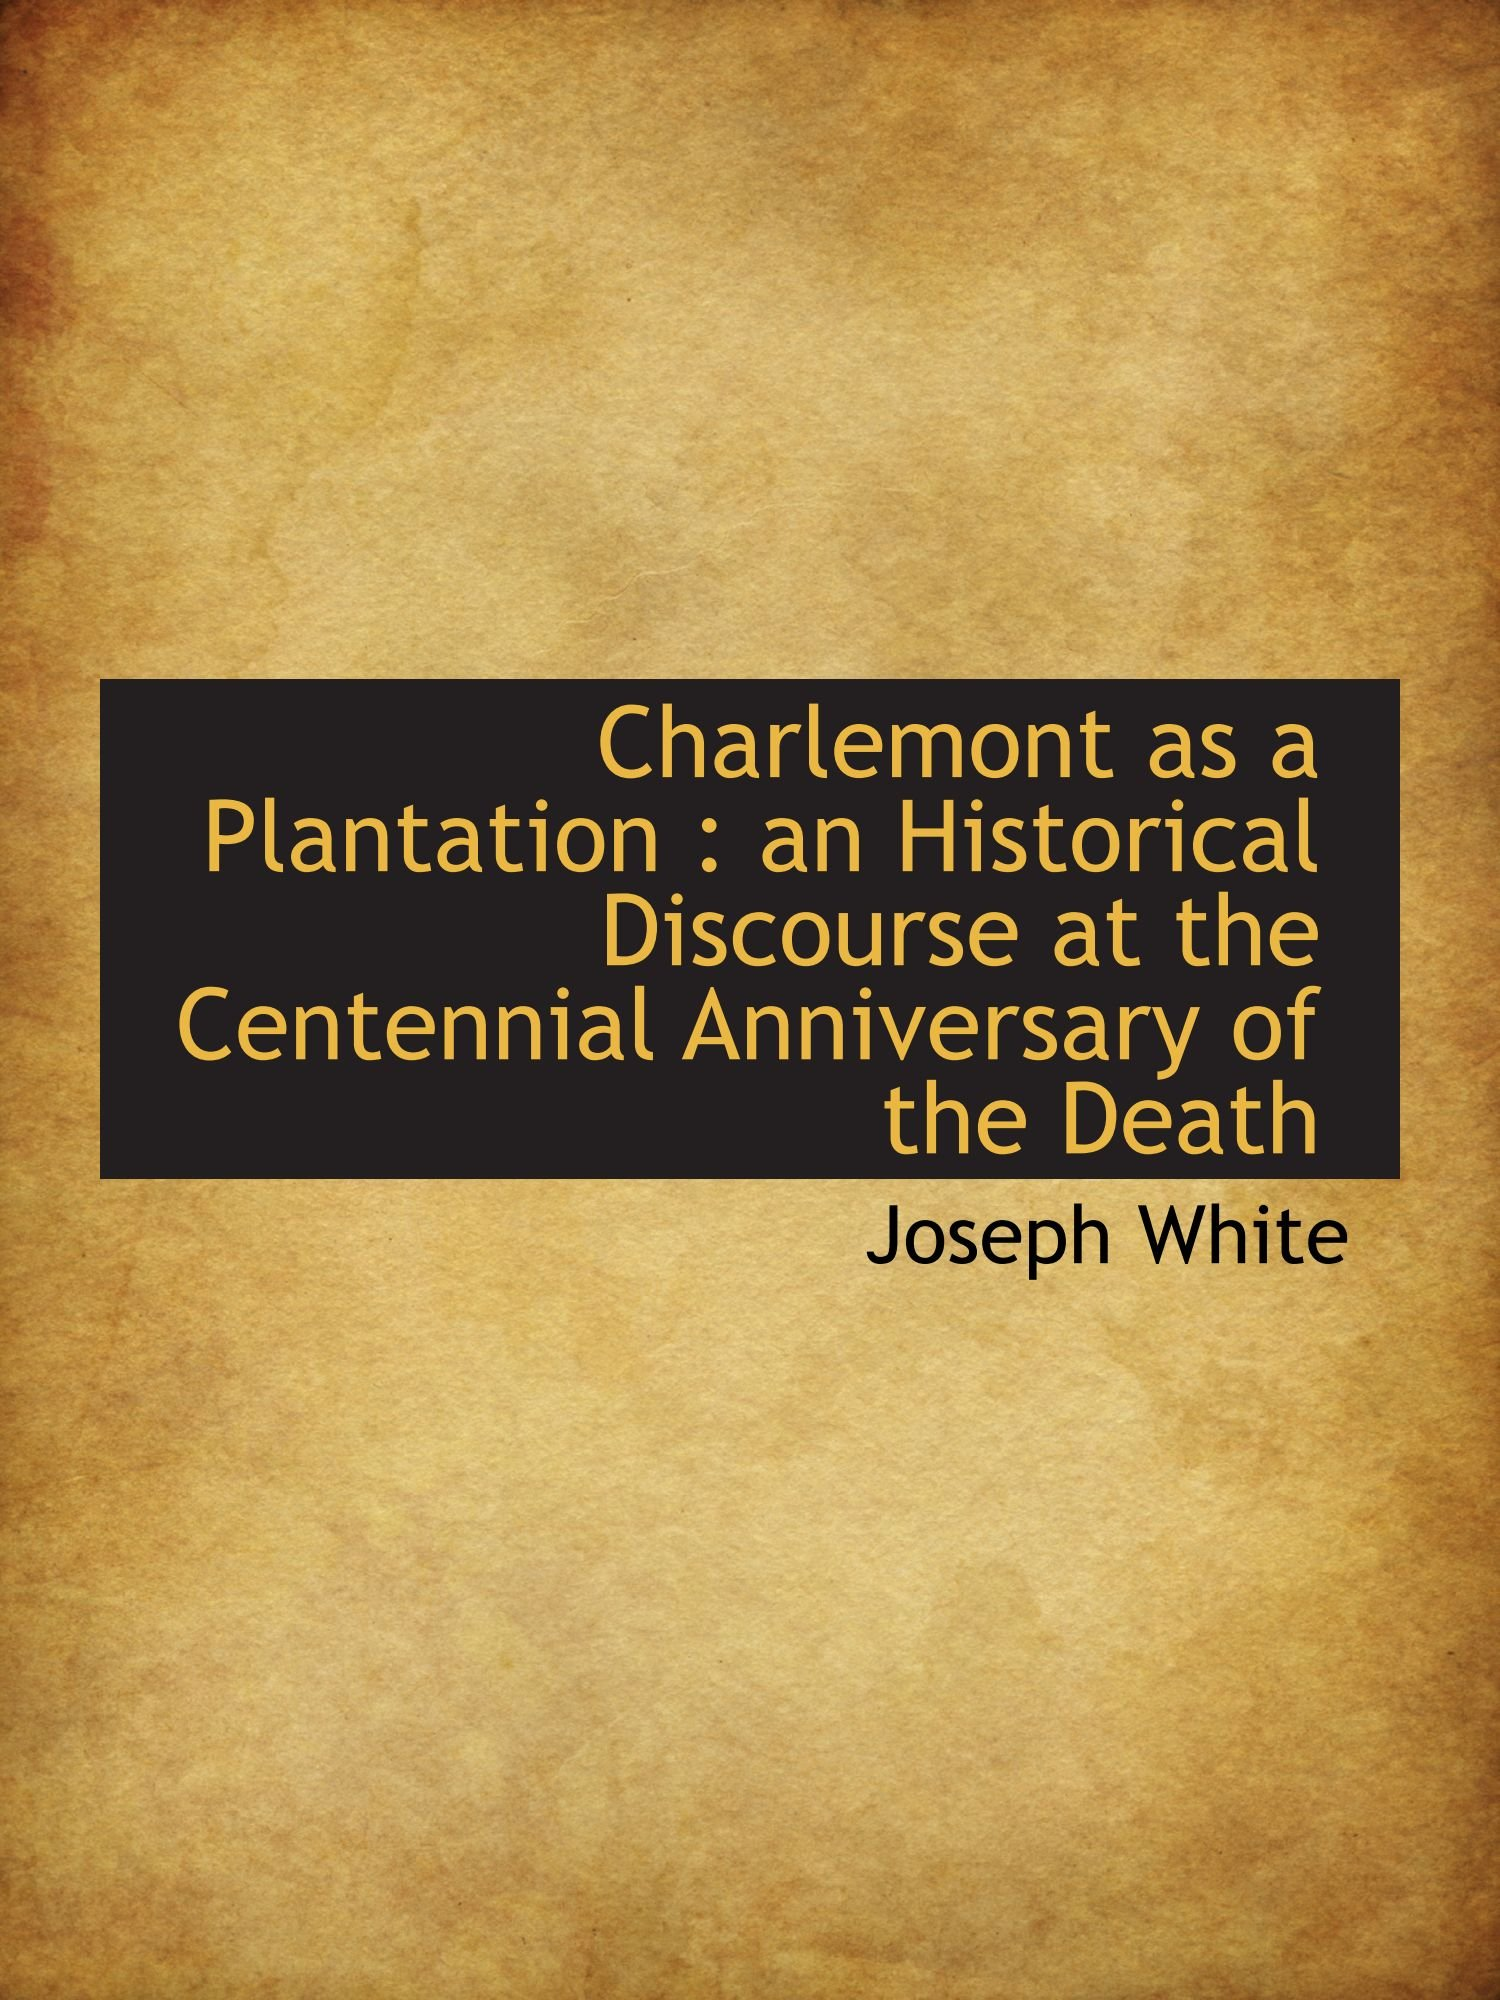 Download Charlemont as a Plantation : an Historical Discourse at the Centennial Anniversary of the Death PDF